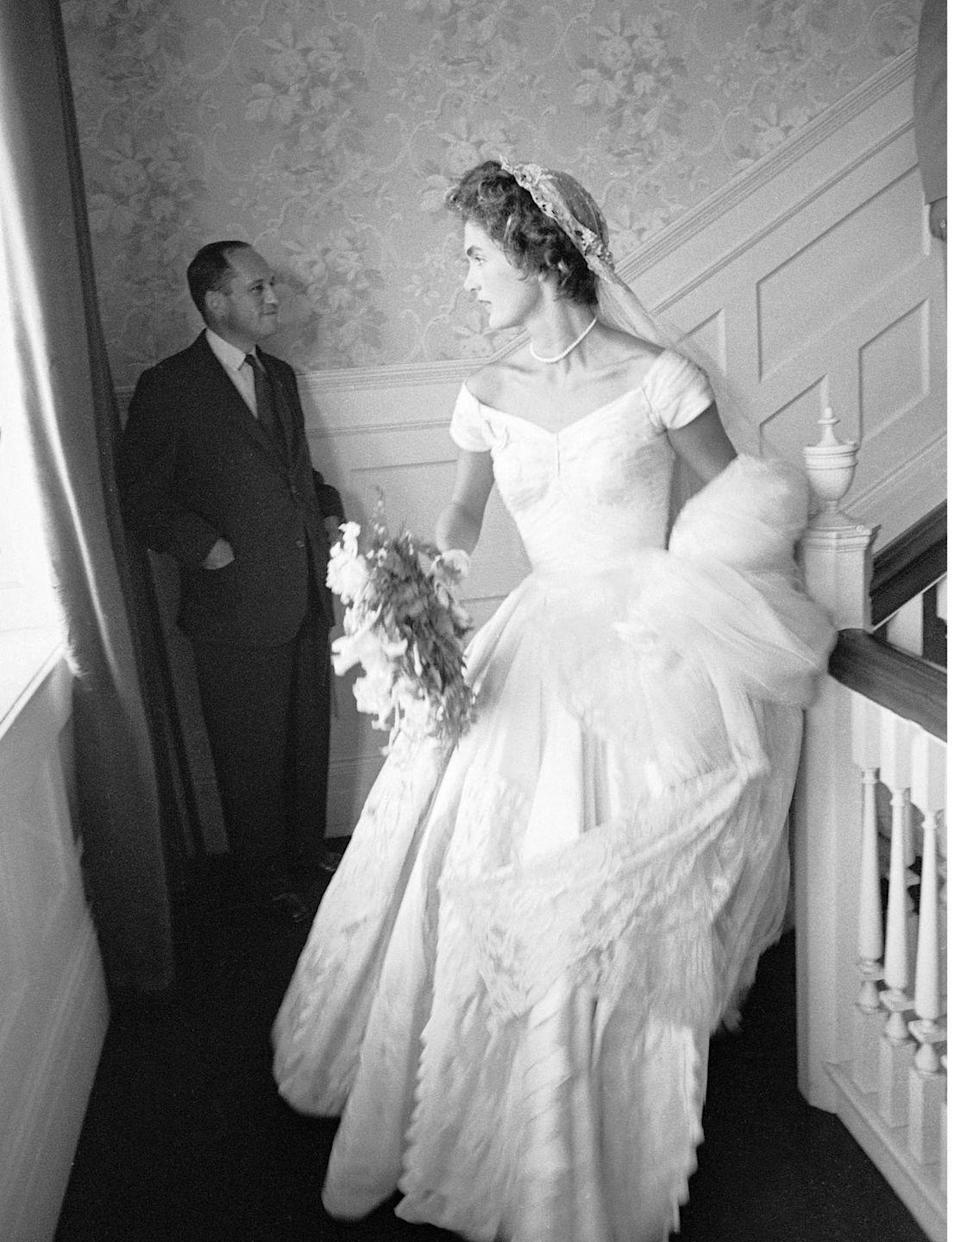 <p>The new bride made her way downstairs to awaiting guests.</p>